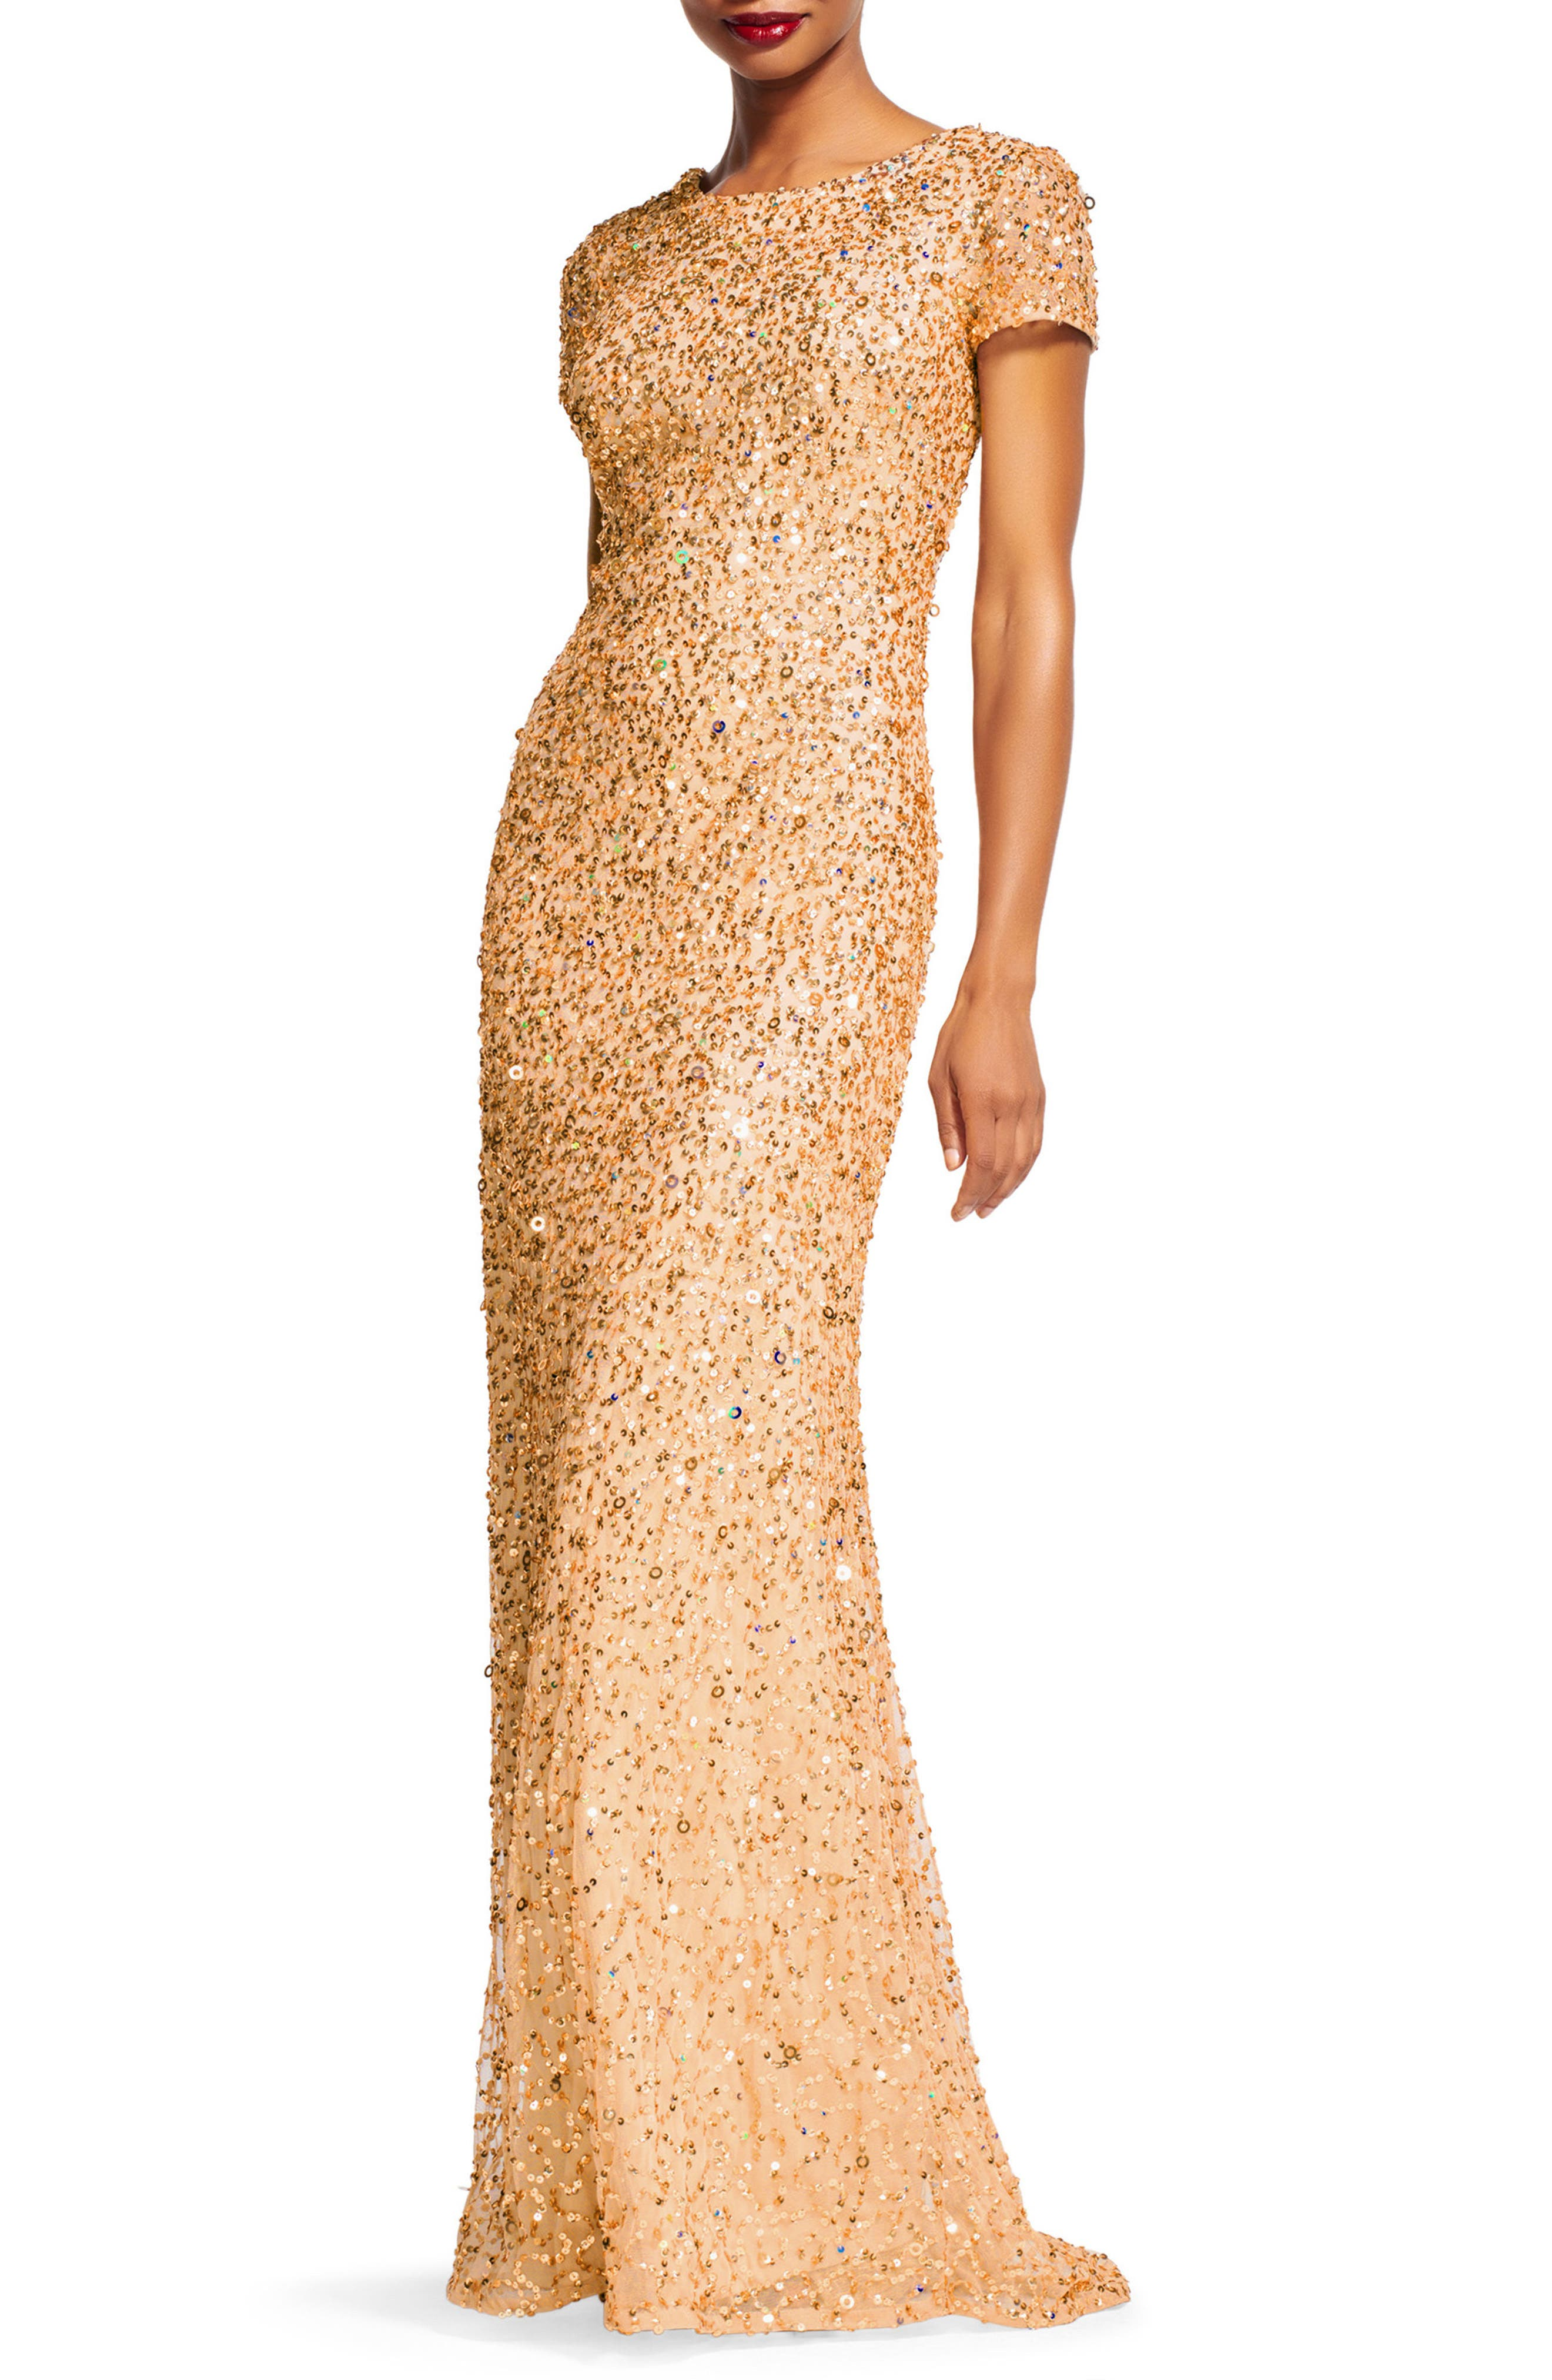 Short Sleeve Sequin Mesh Gown,                             Alternate thumbnail 3, color,                             CHAMPAGNE/ GOLD